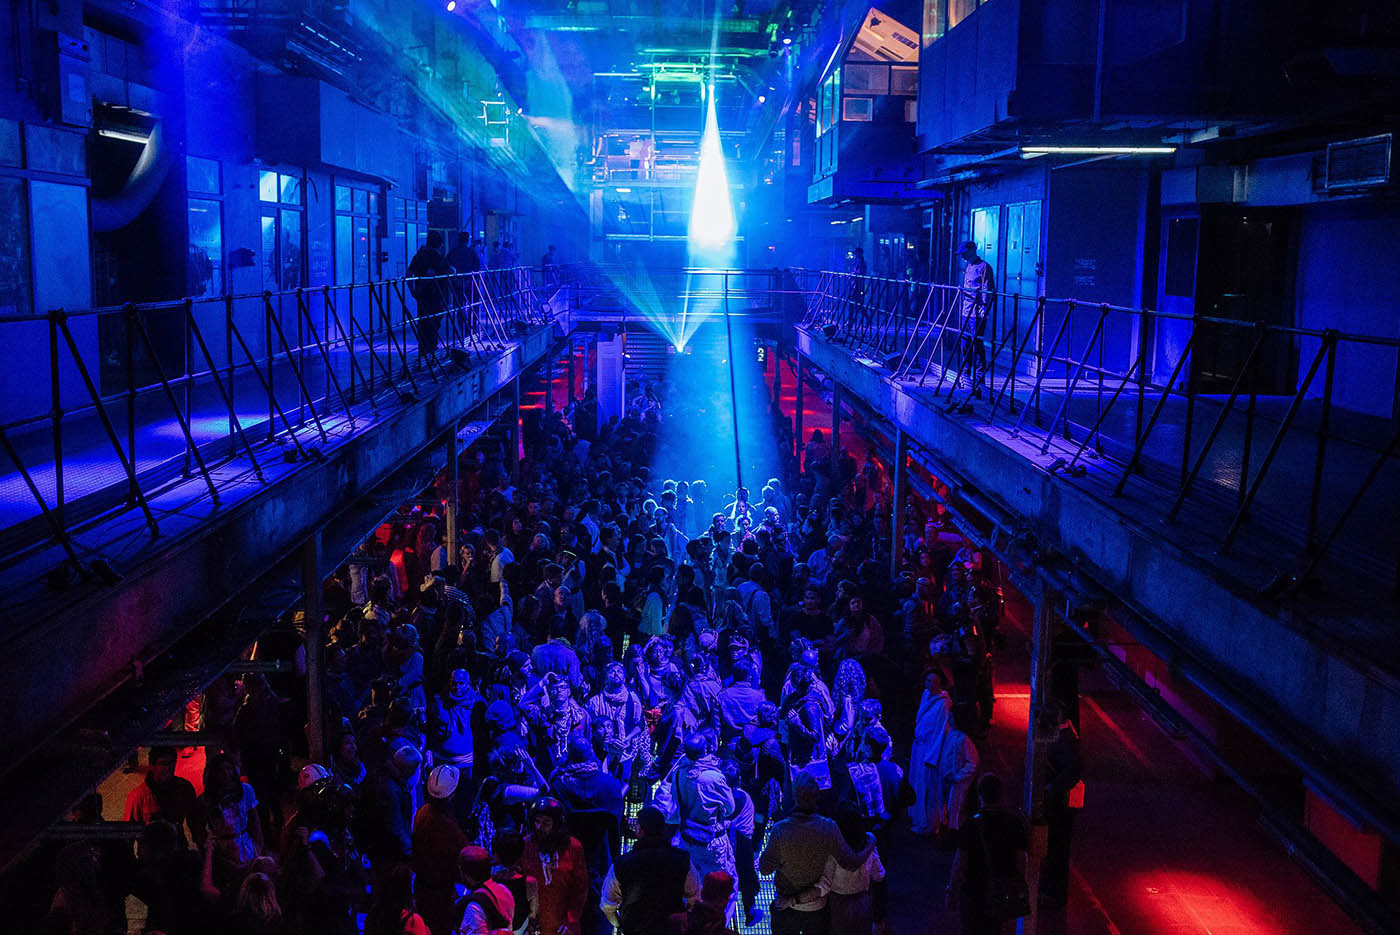 UK nightclubs could re-open